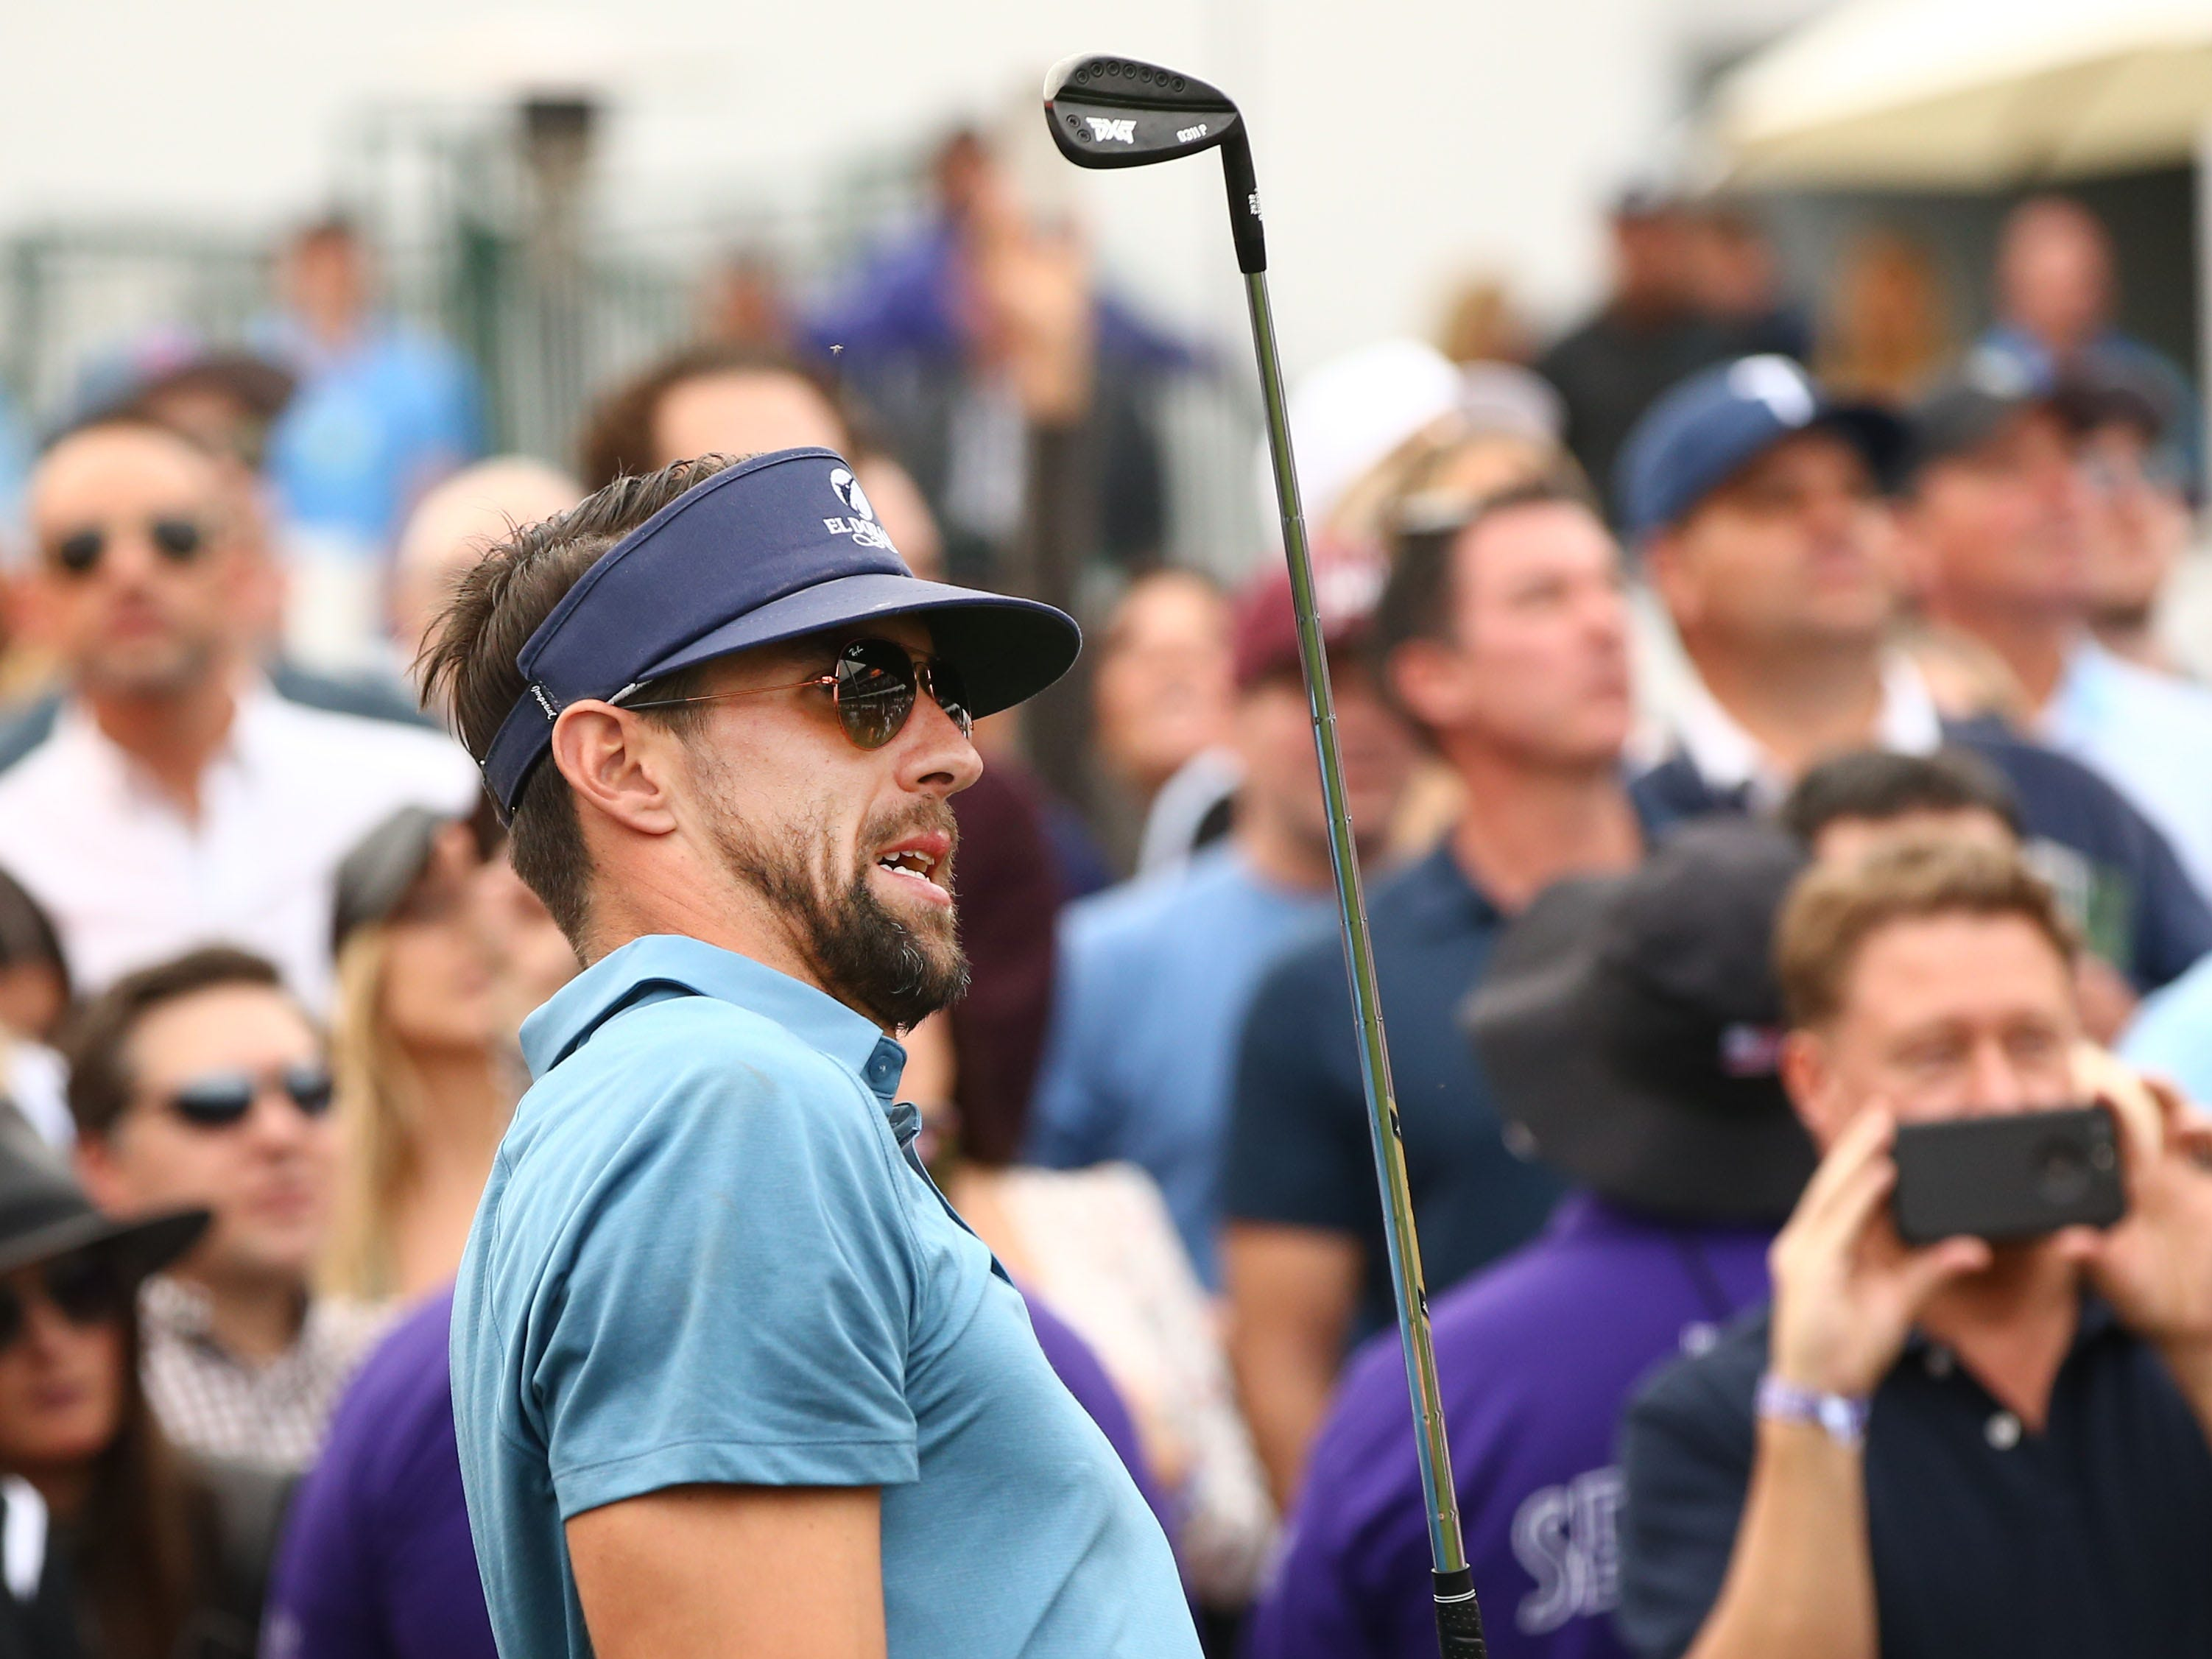 Michael Phelps reacts to his shot during the Phoenix Suns Charities Shot at Glory hole-in-one contest at the 16th hole on Jan. 30 at the TPC Scottsdale Stadium Course.